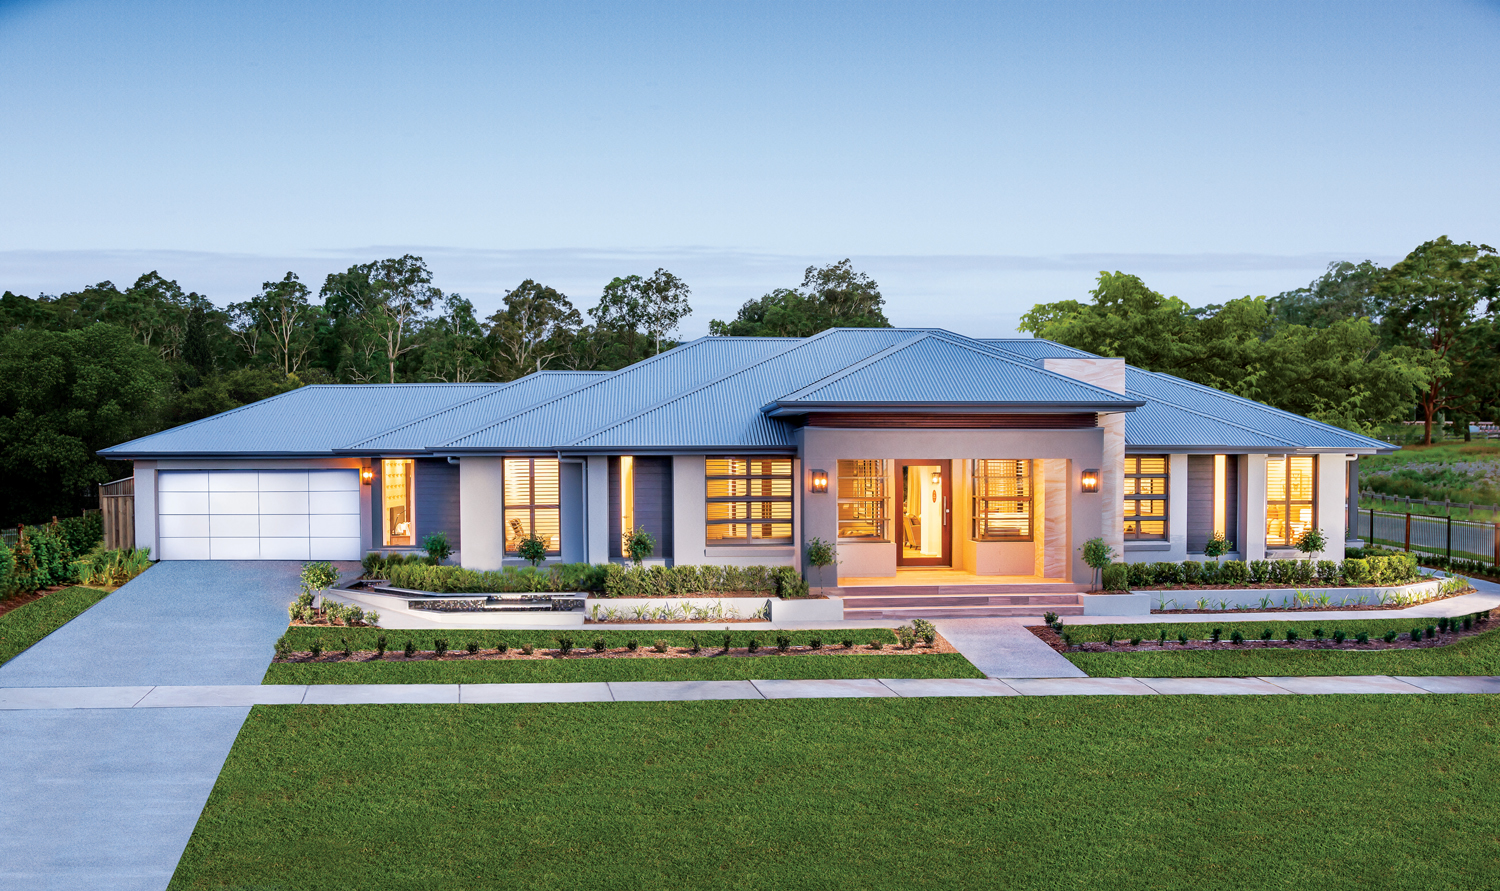 This contemporary ranch style home is perfect for any growing family